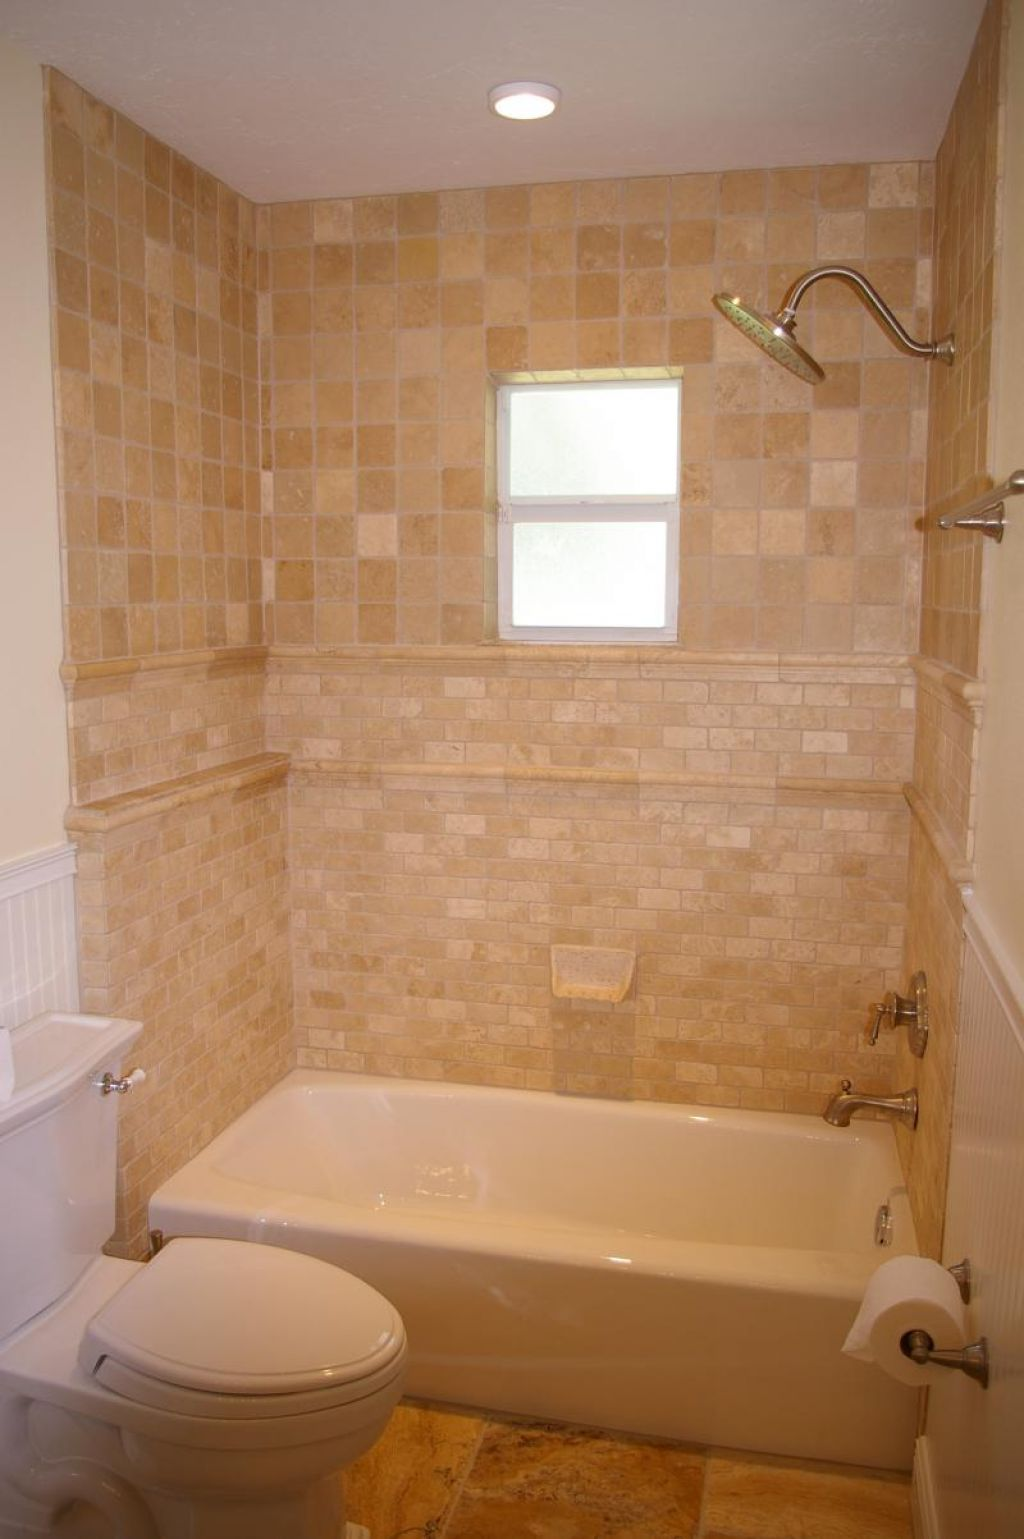 30 shower tile ideas on a budget for Bathtub ideas